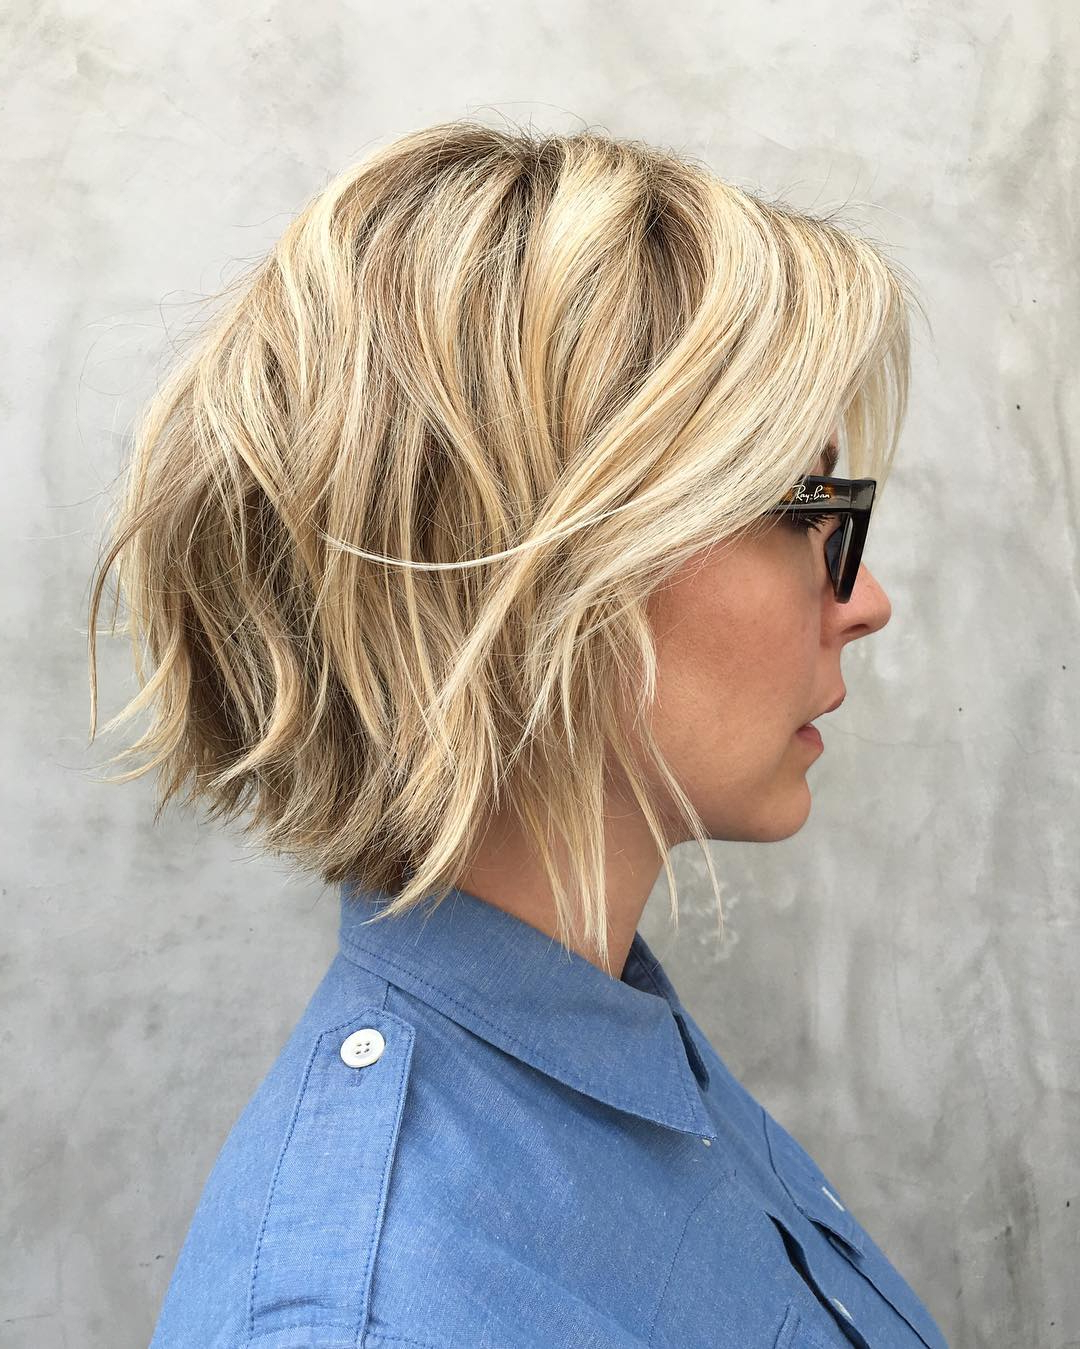 30 Trendiest Shaggy Bob Haircuts Of The Season Inside Inverted Brunette Bob Hairstyles With Feathered Highlights (View 3 of 20)